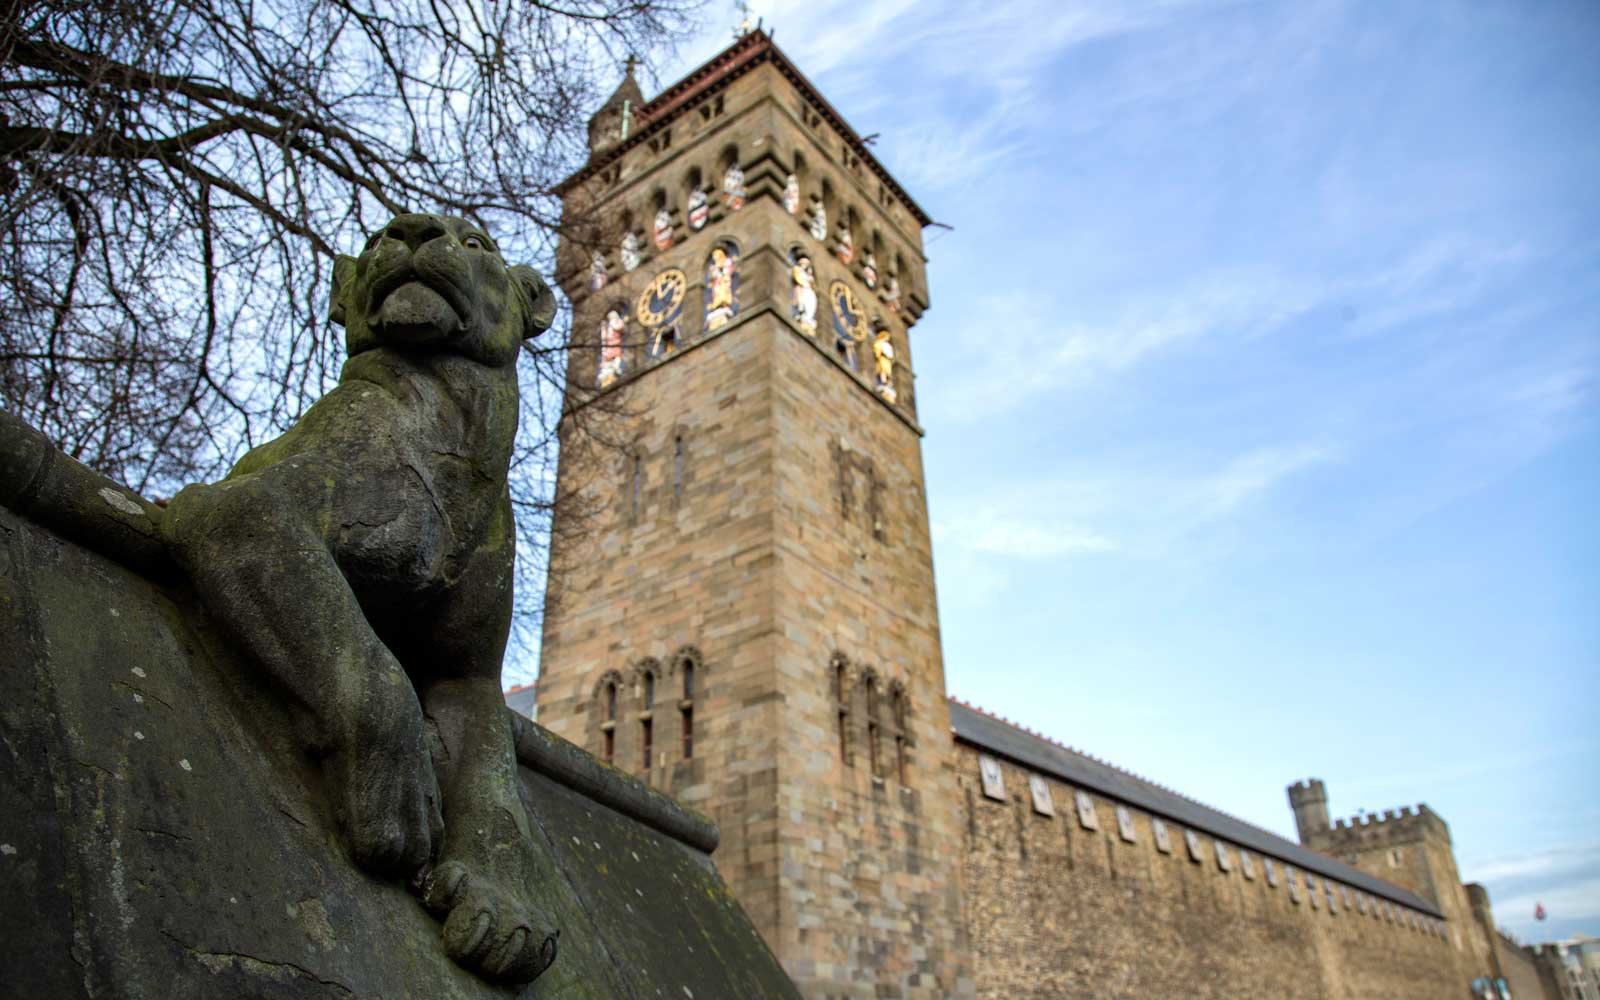 Detail of exterior and statue at Cardiff Castle